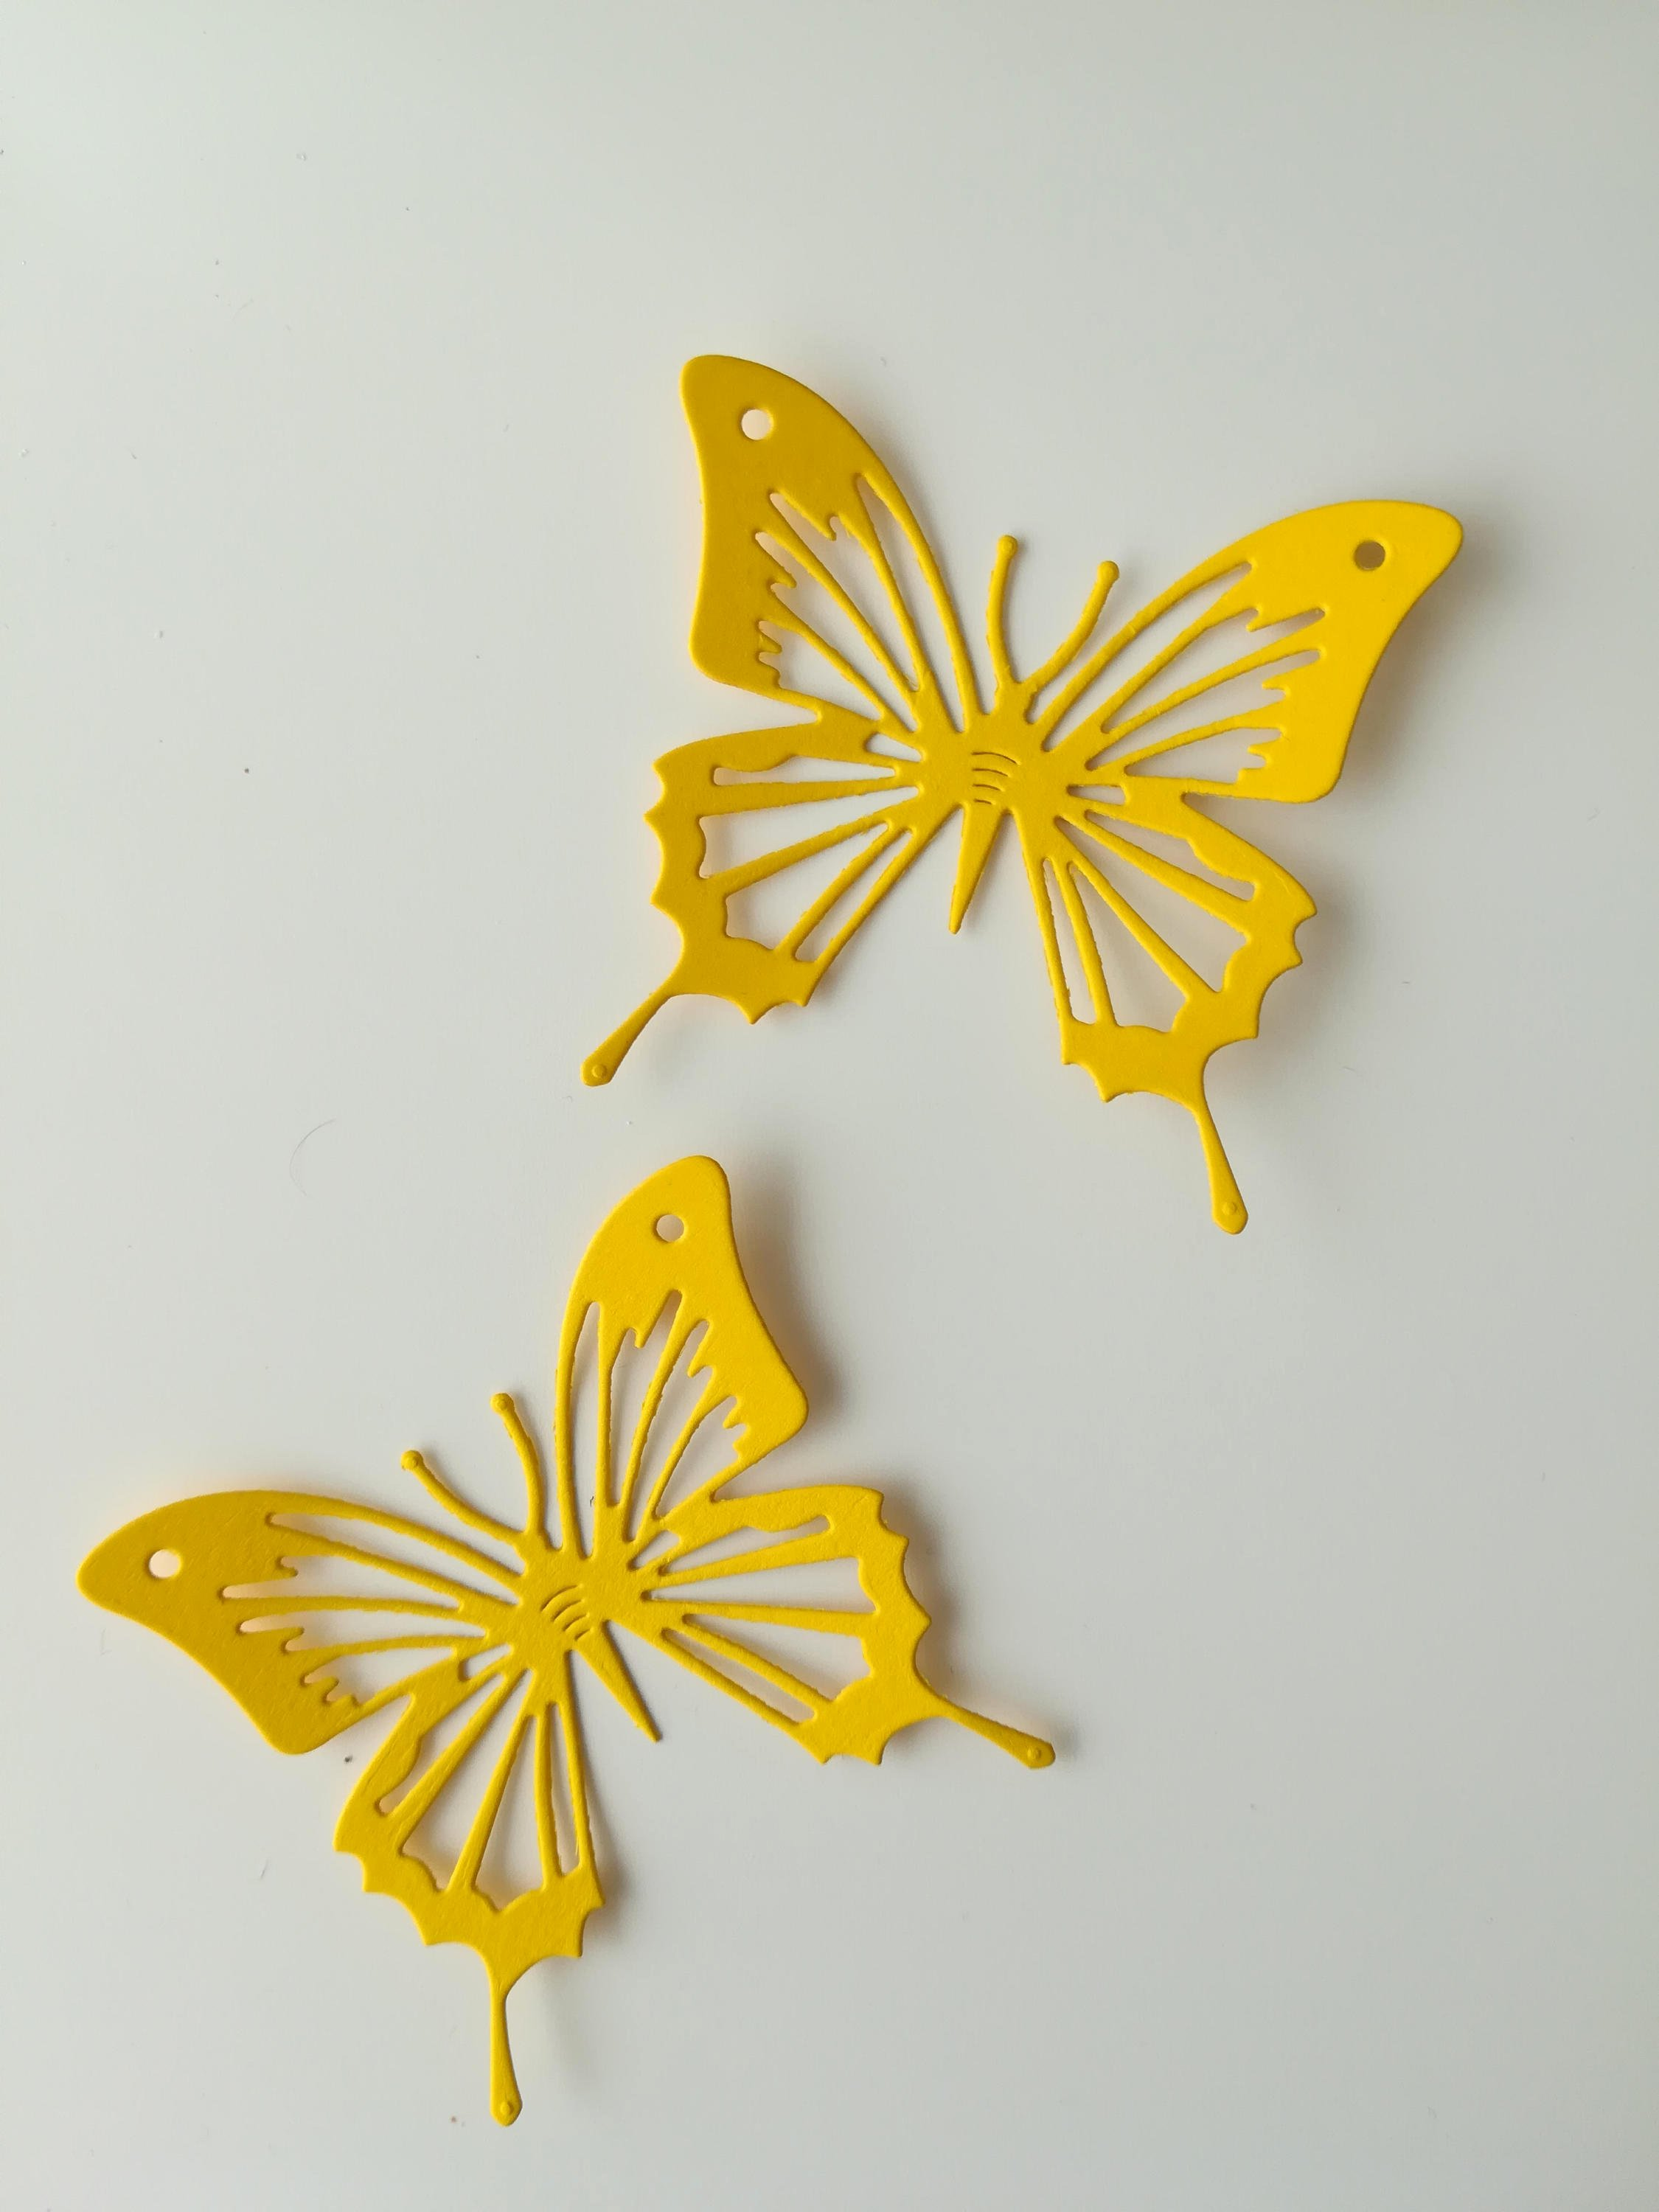 Butterfly Paper Cut Out Fresh Paper butterflies 10pcs Die Cut butterflies Colored